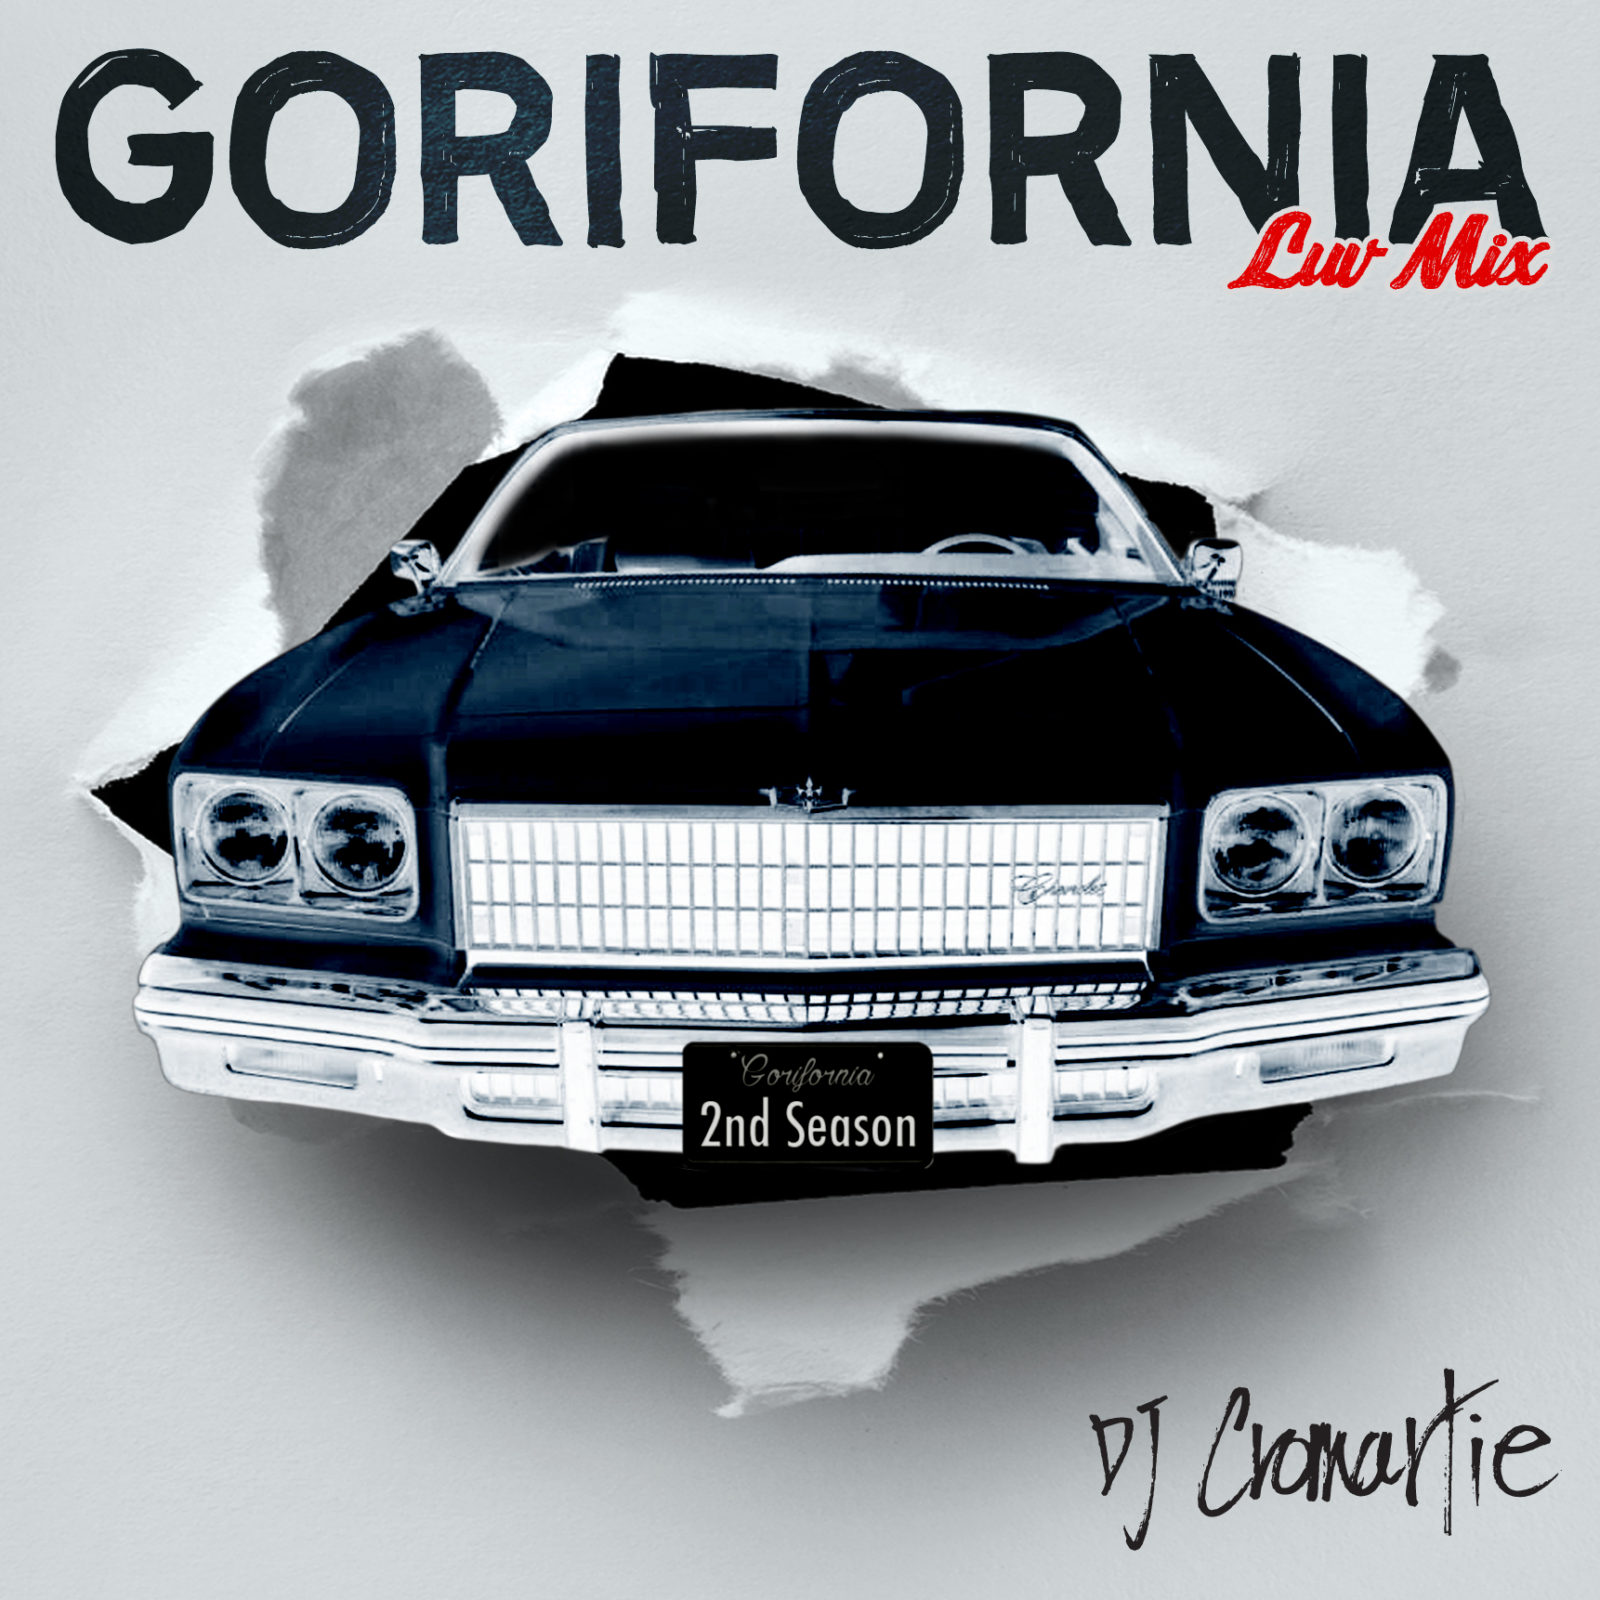 [MIX CD] Gorifornia LUV Mix 2nd Season / DJ Cromartie ¥1,080(税込)